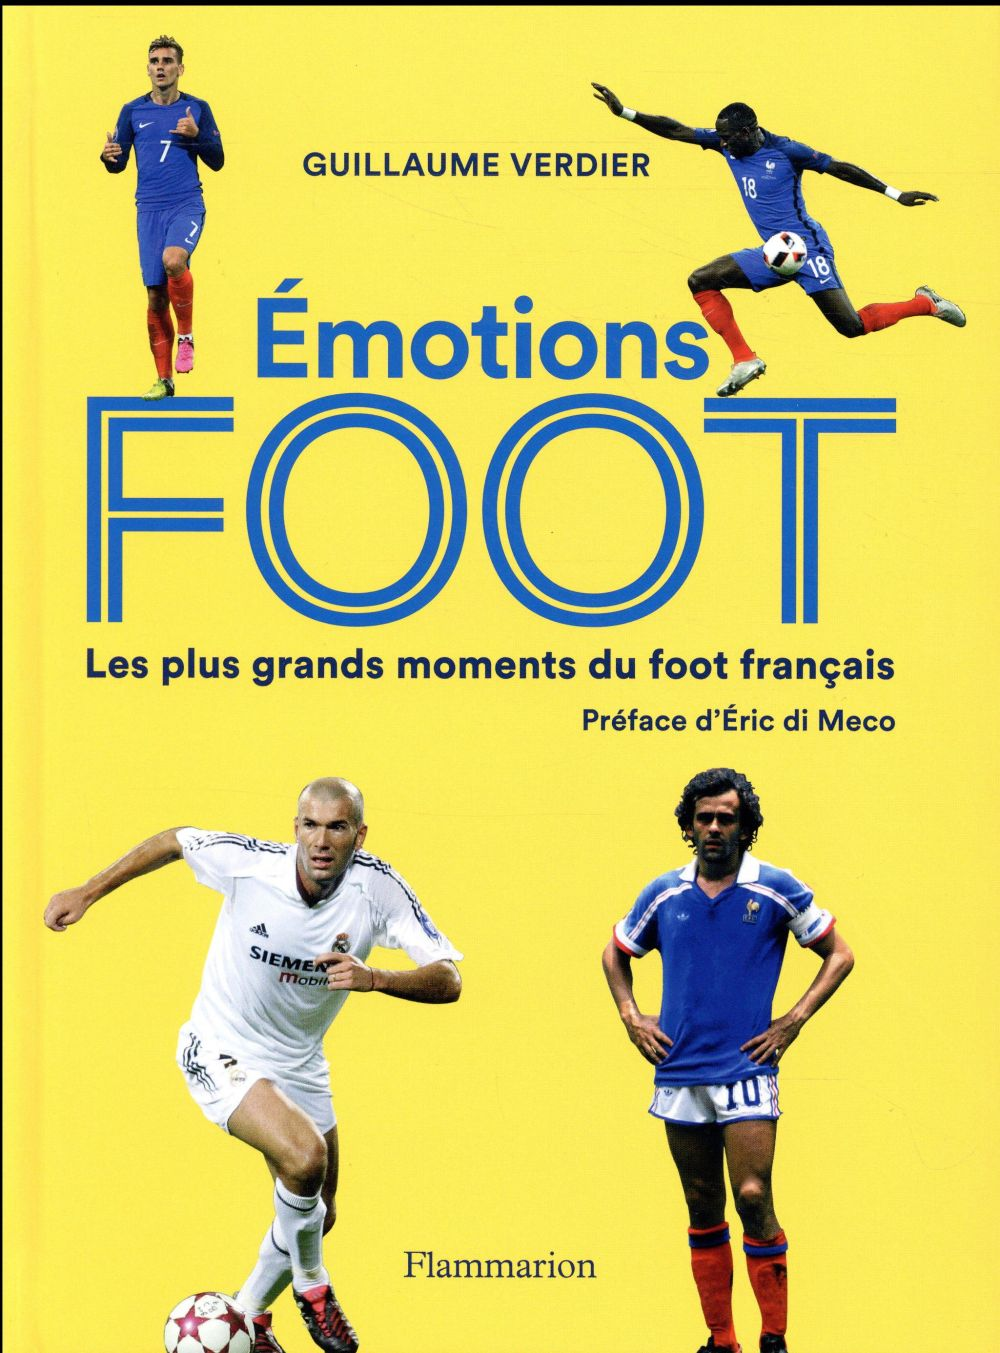 EMOTIONS FOOT - LES PLUS GRANDS MOMENTS DU FOOT FRANCAIS